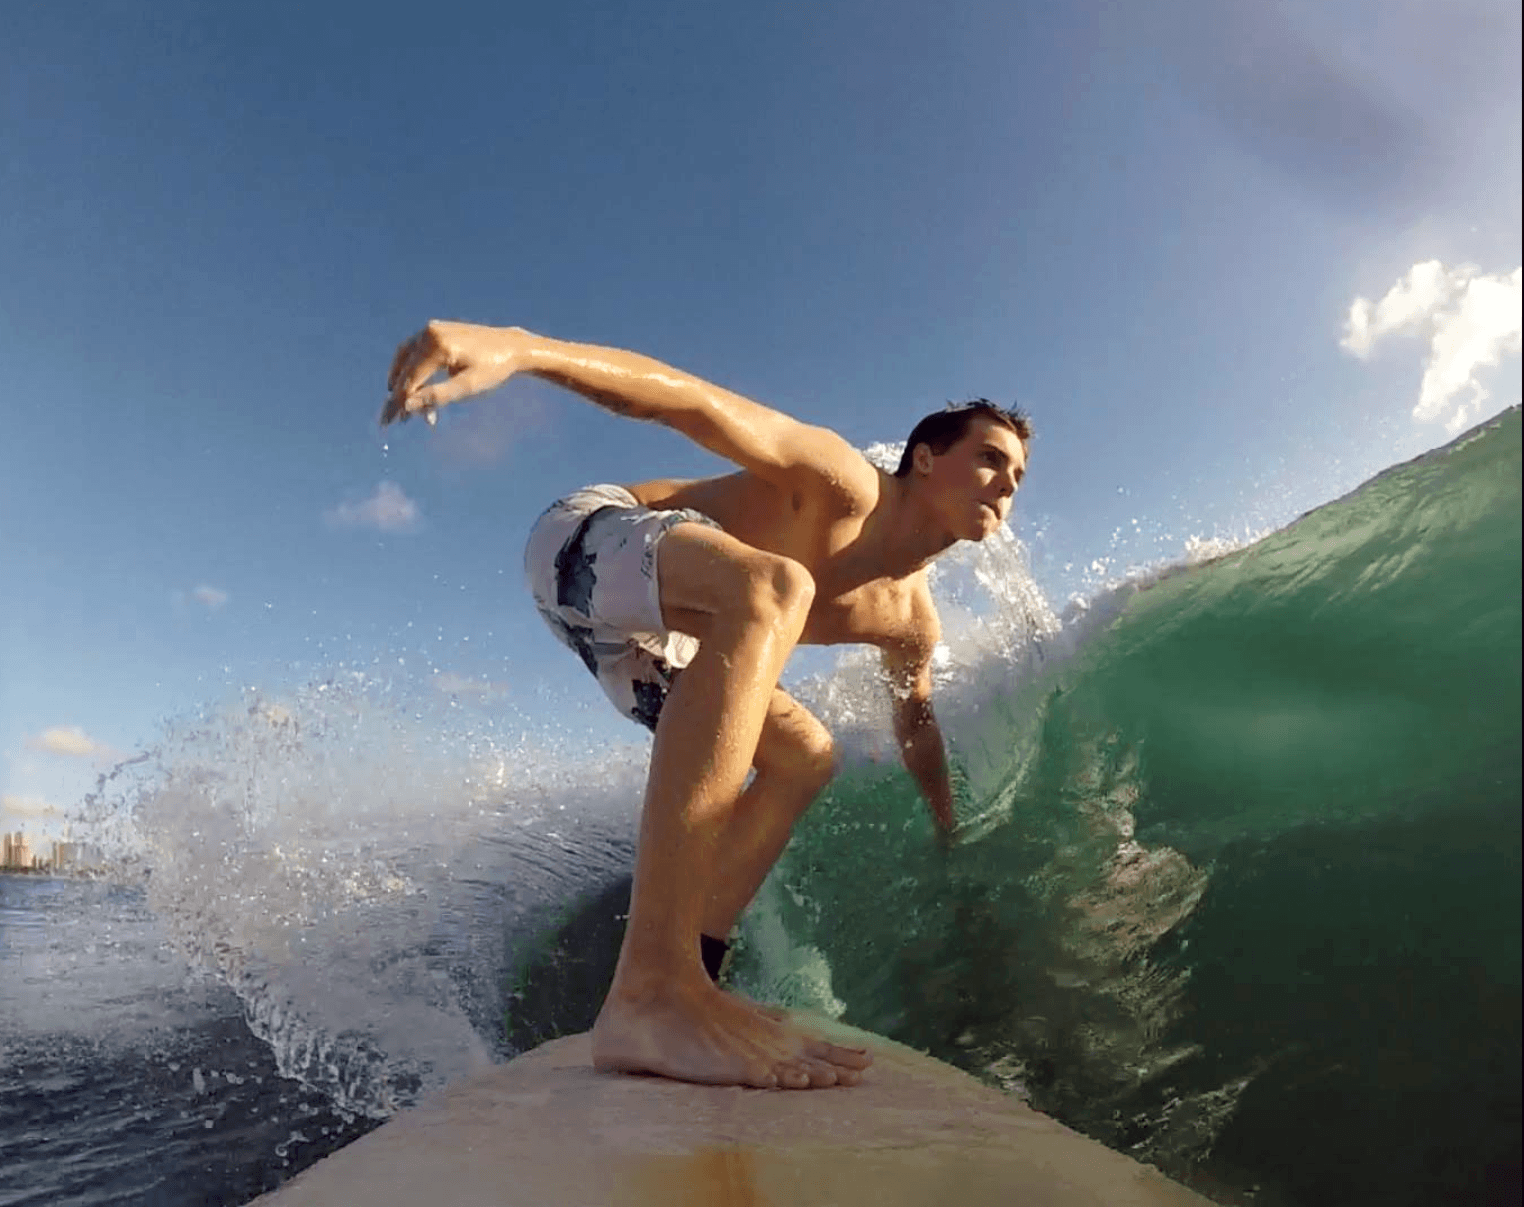 Ben Steeper surfs at his favorite break (Kewalo's) on the south shore of O'ahu.